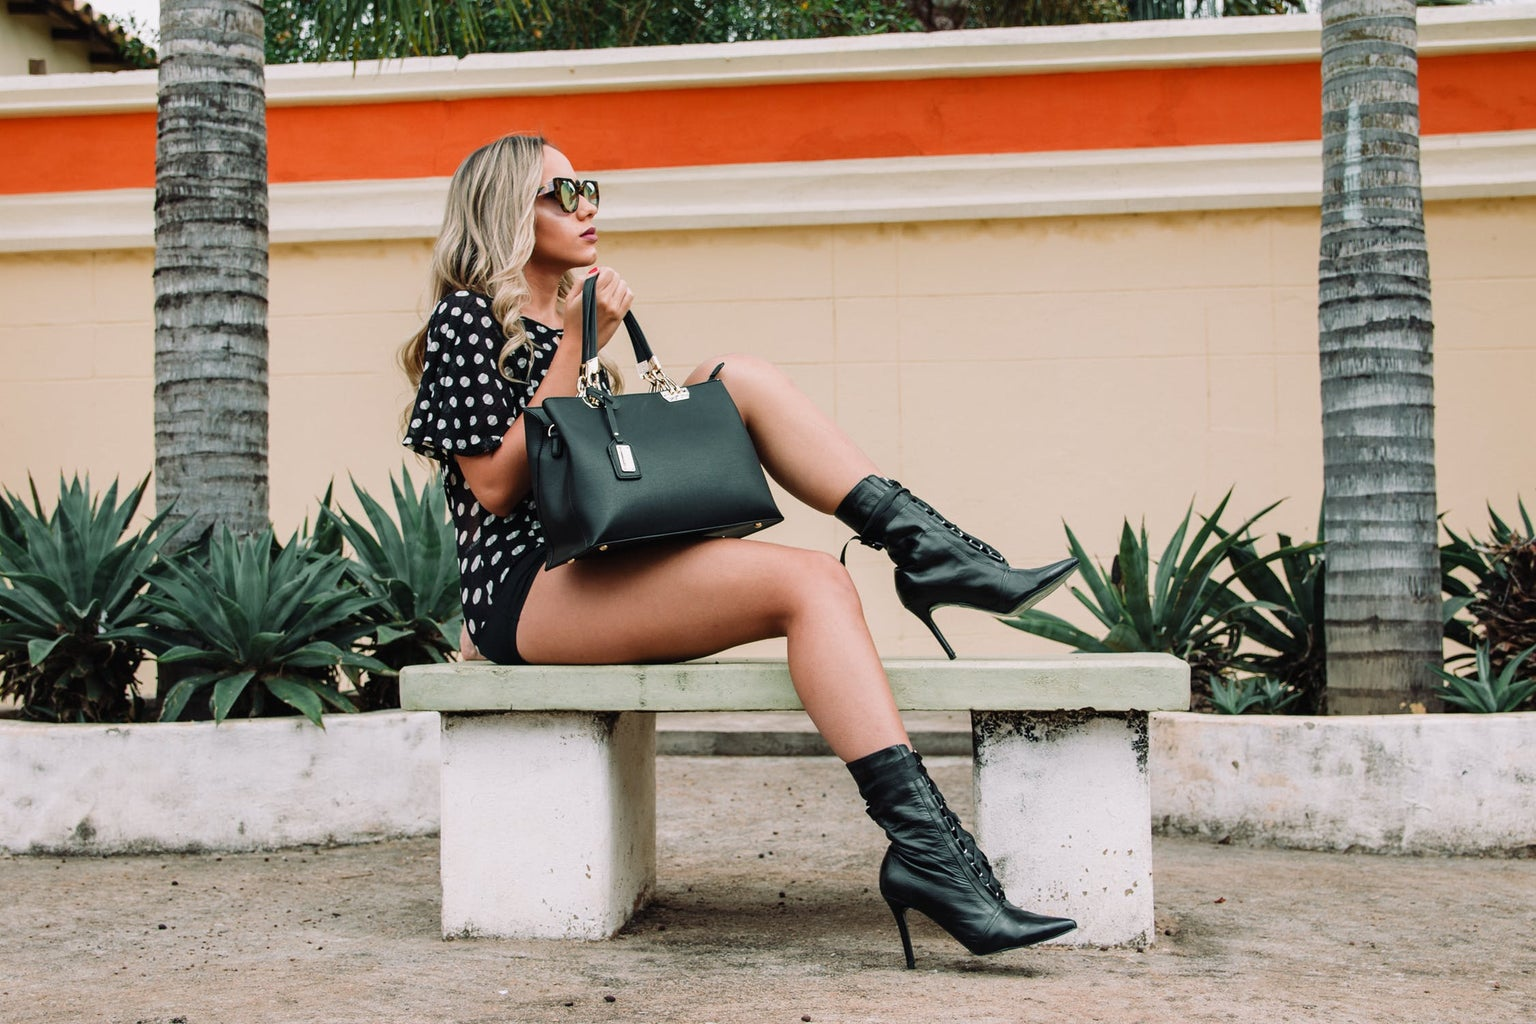 Girl on bench showing outfit